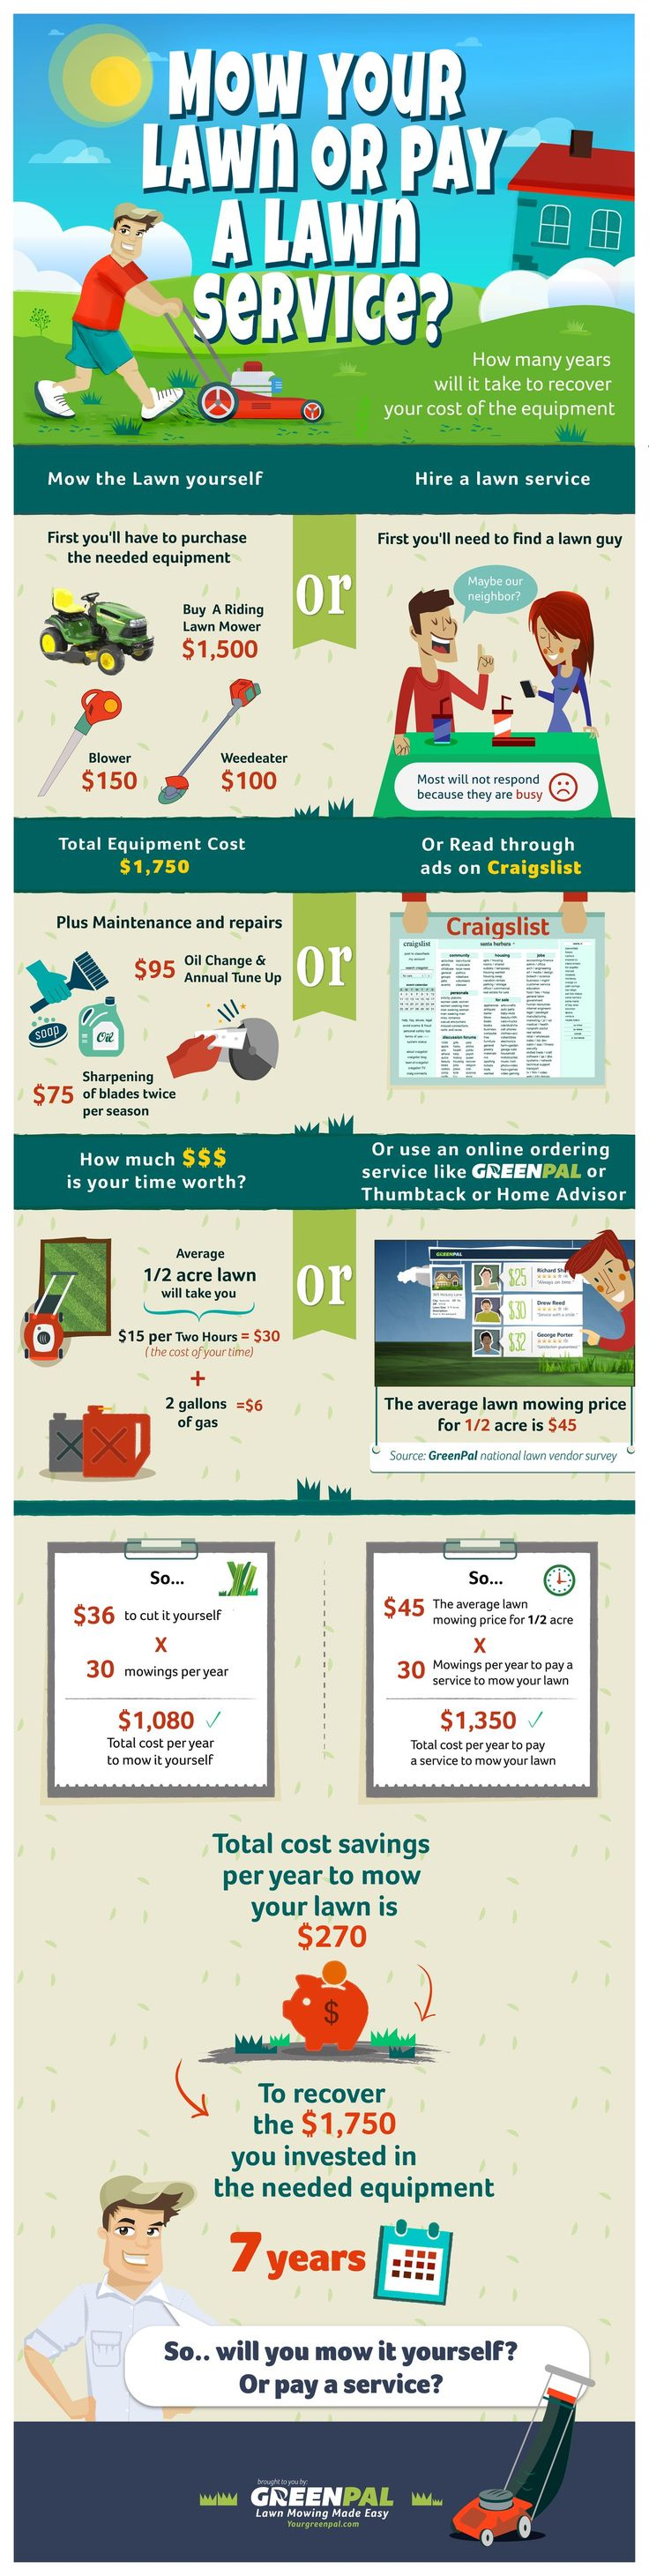 Lawn care advertising ideas - Mow Your Lawn Or Pay A Guy Infographic